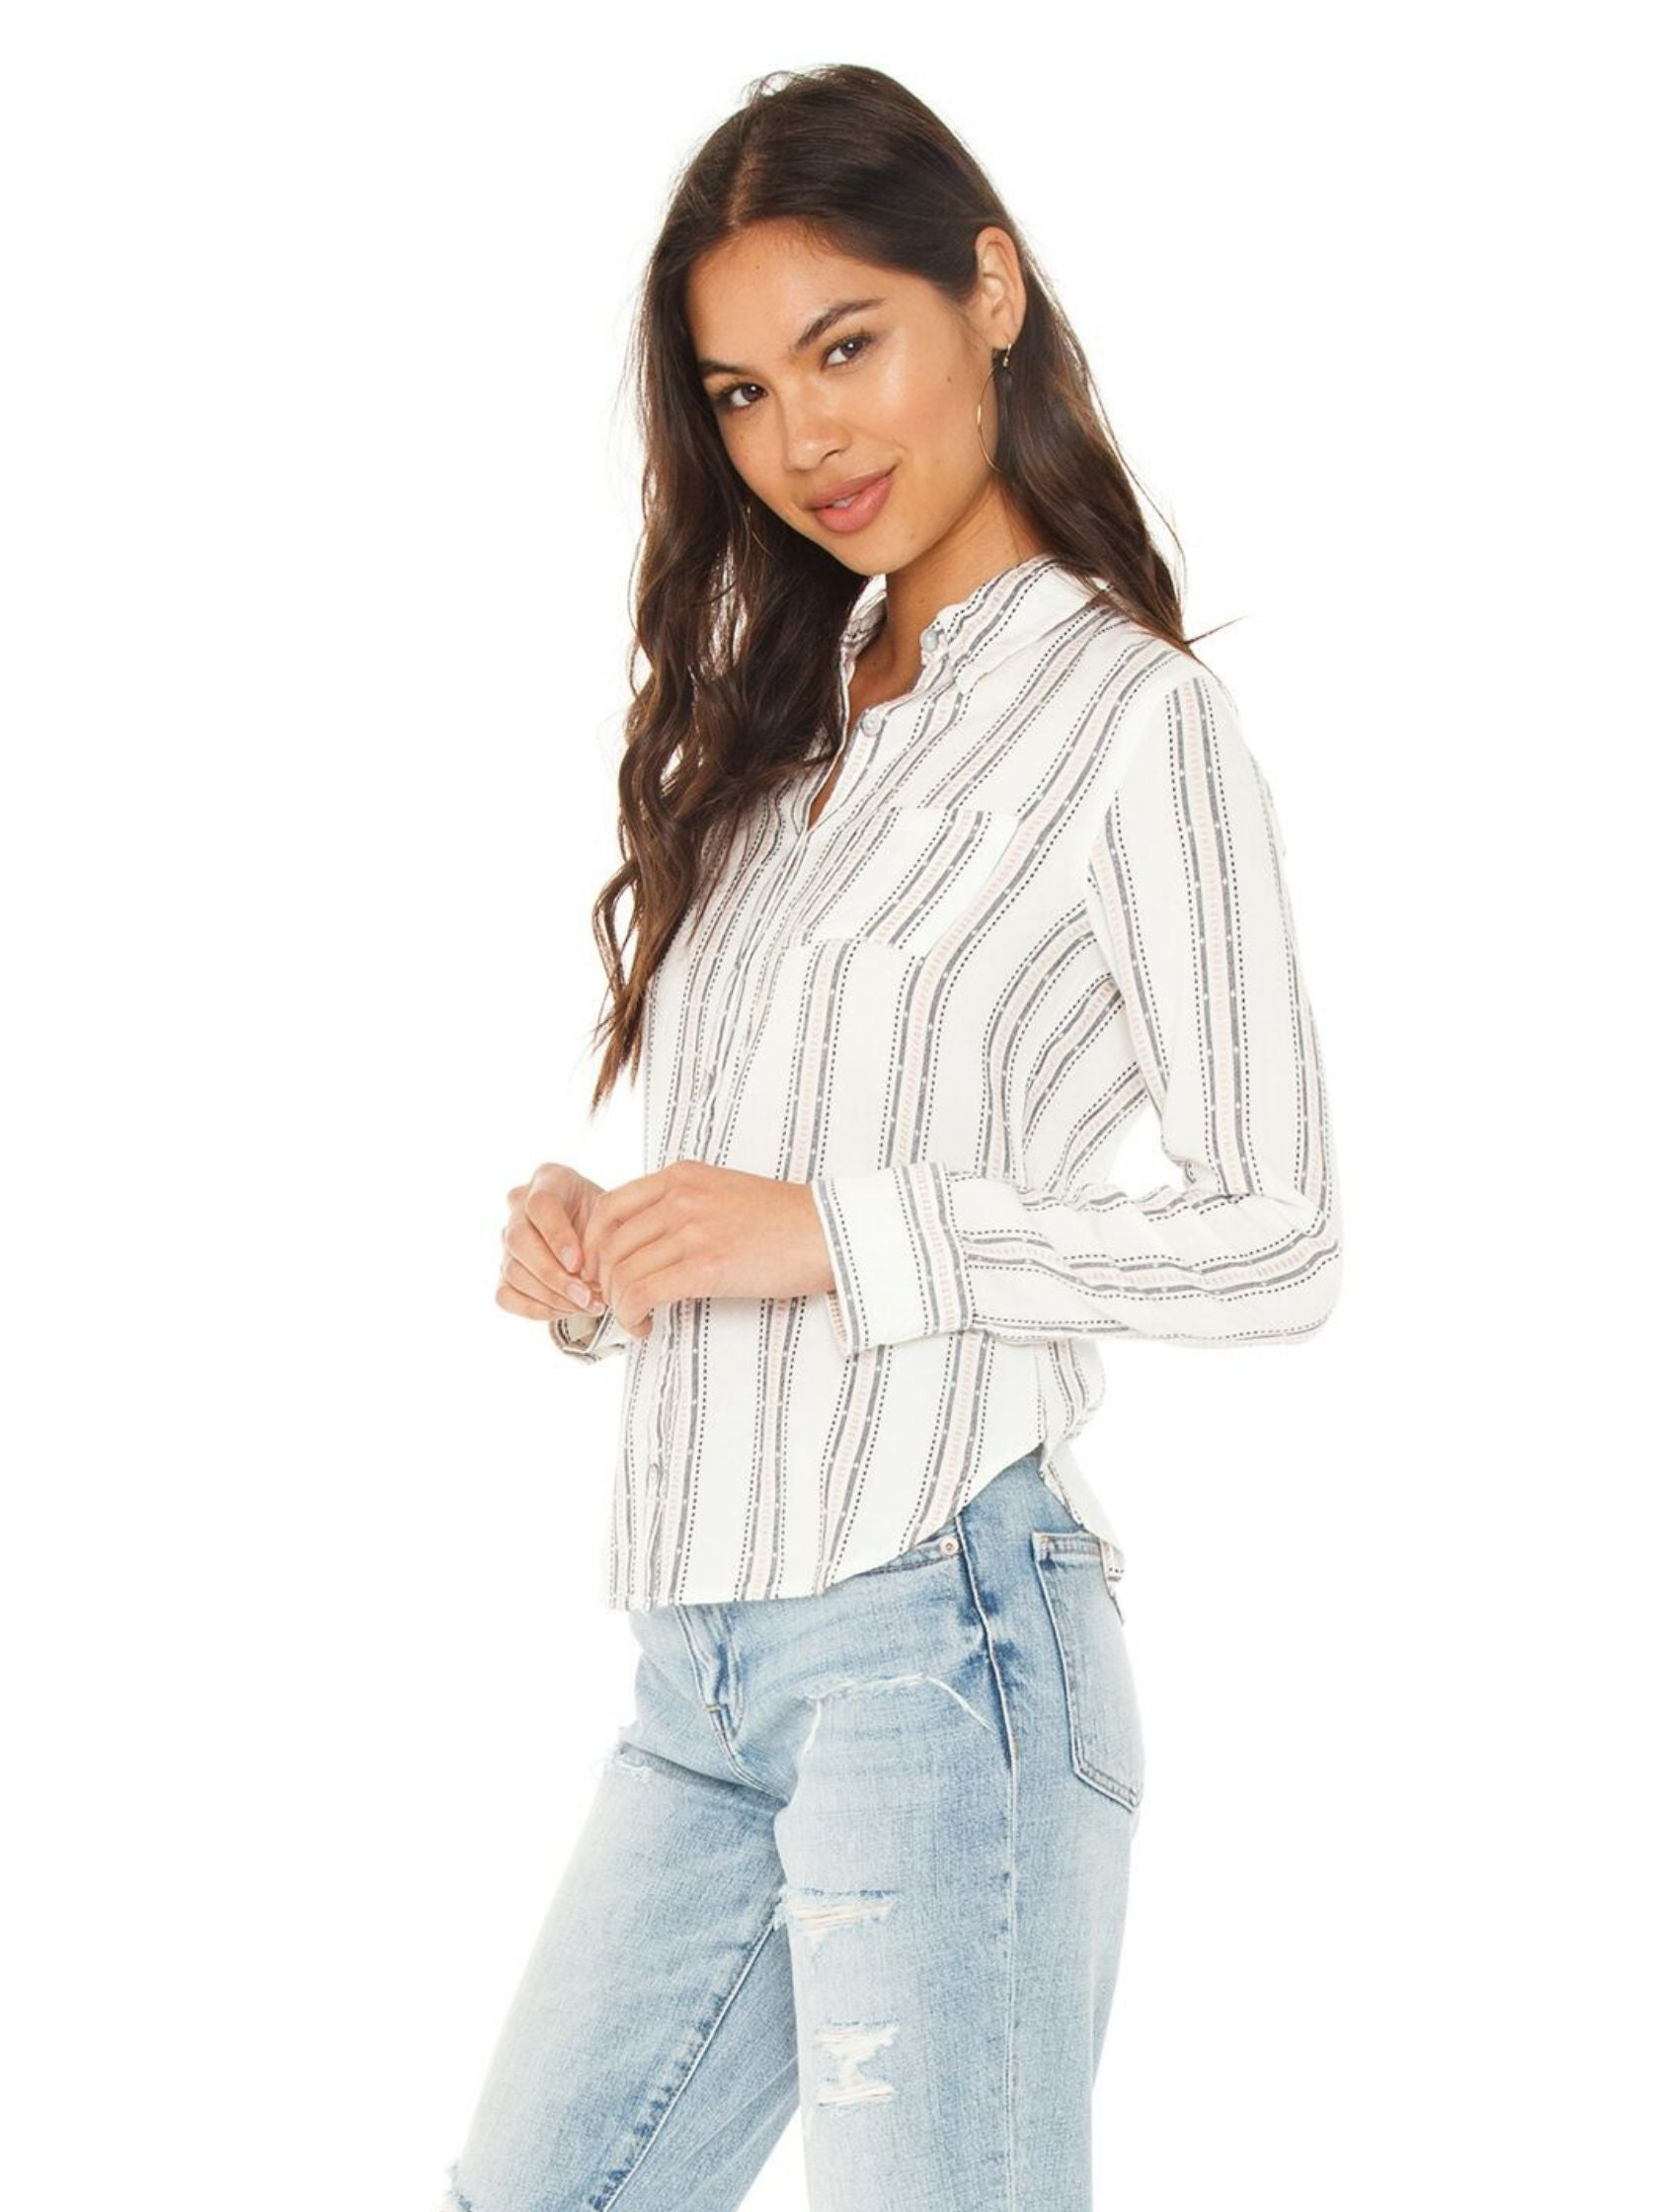 Women wearing a top rental from Chaser called Classic Button Down Blouse